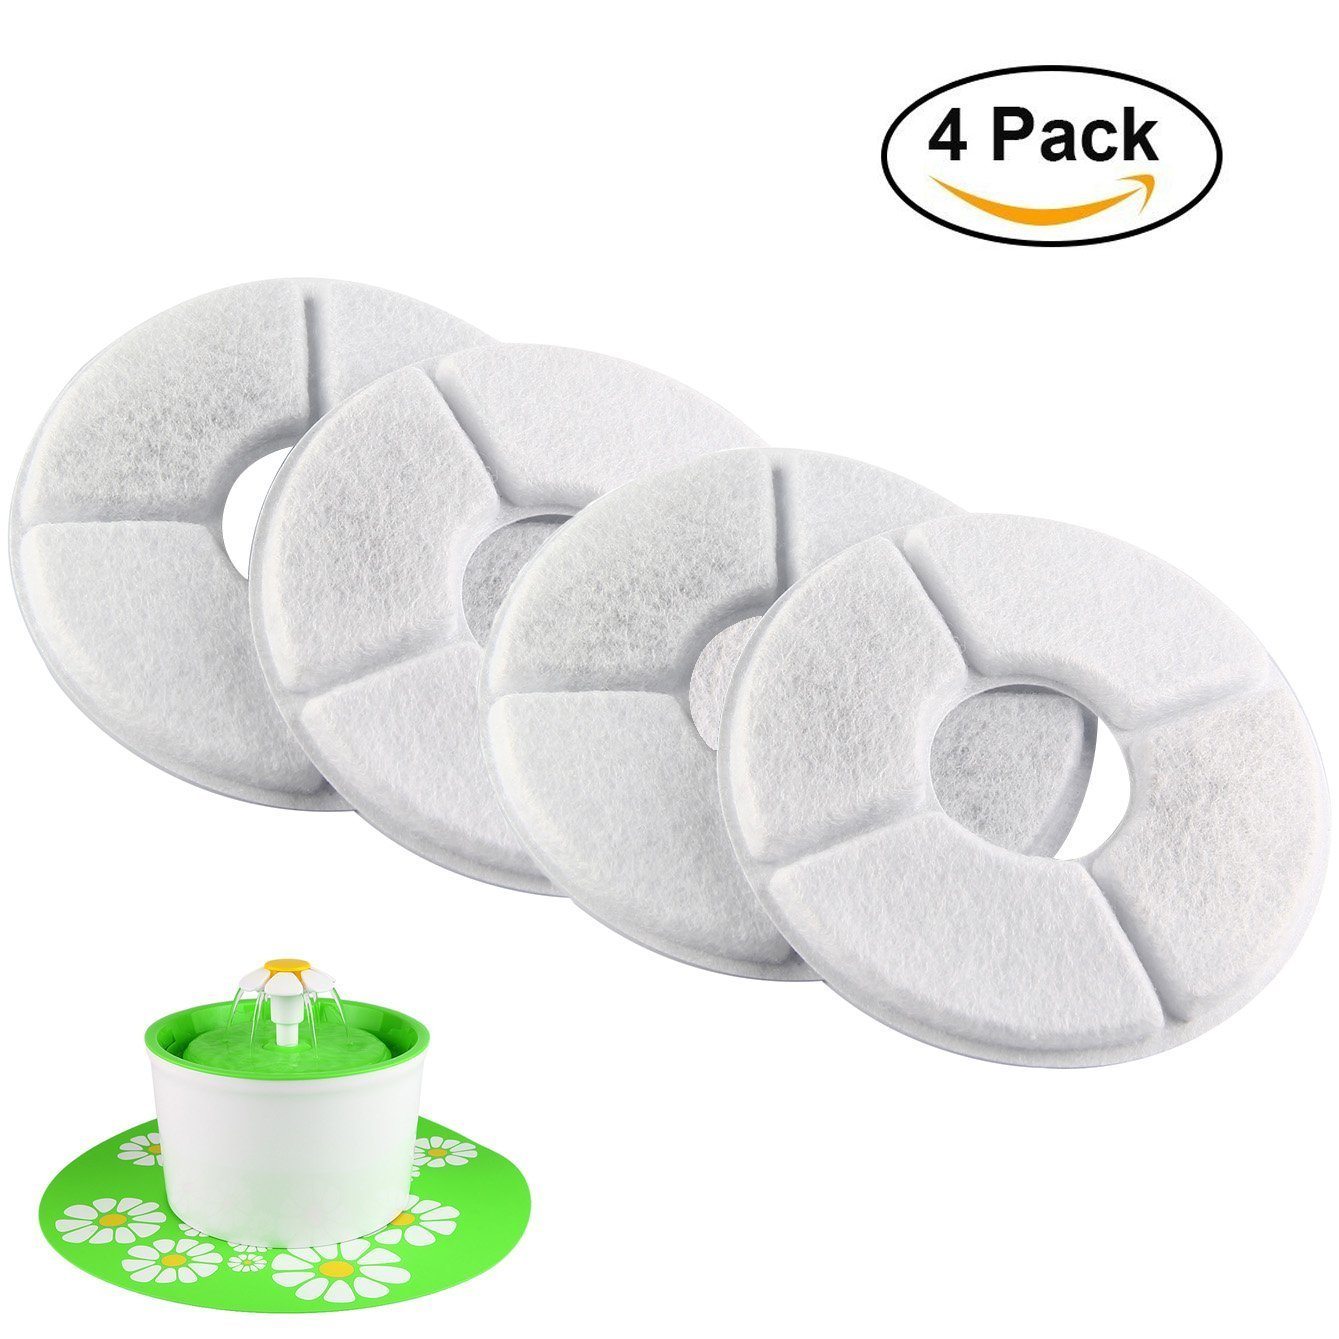 Pack of 4 Grey JIAN YA NA Replacement Softening Water Fountain Filters,Premium Cotton Activated Carbon Pet Water Filter